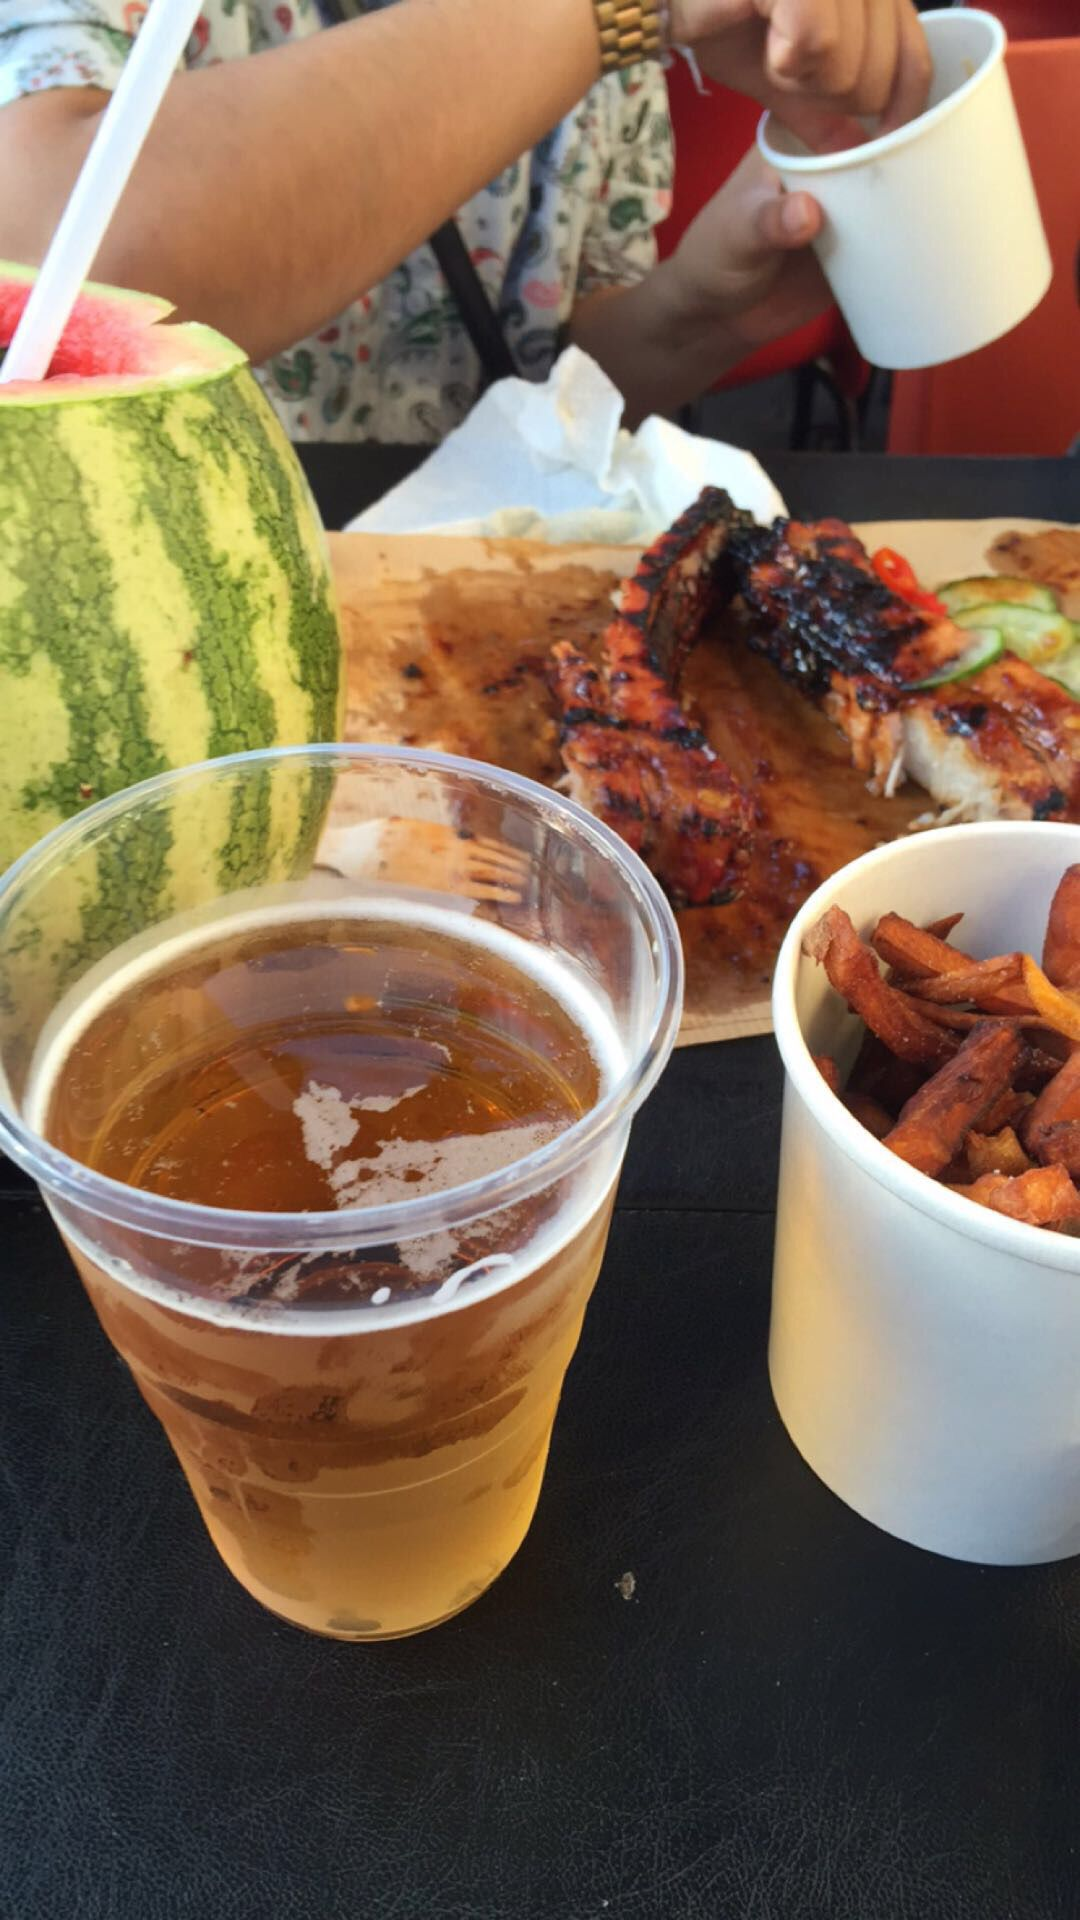 Beer Watermelon And Bbq Thank You Very Much